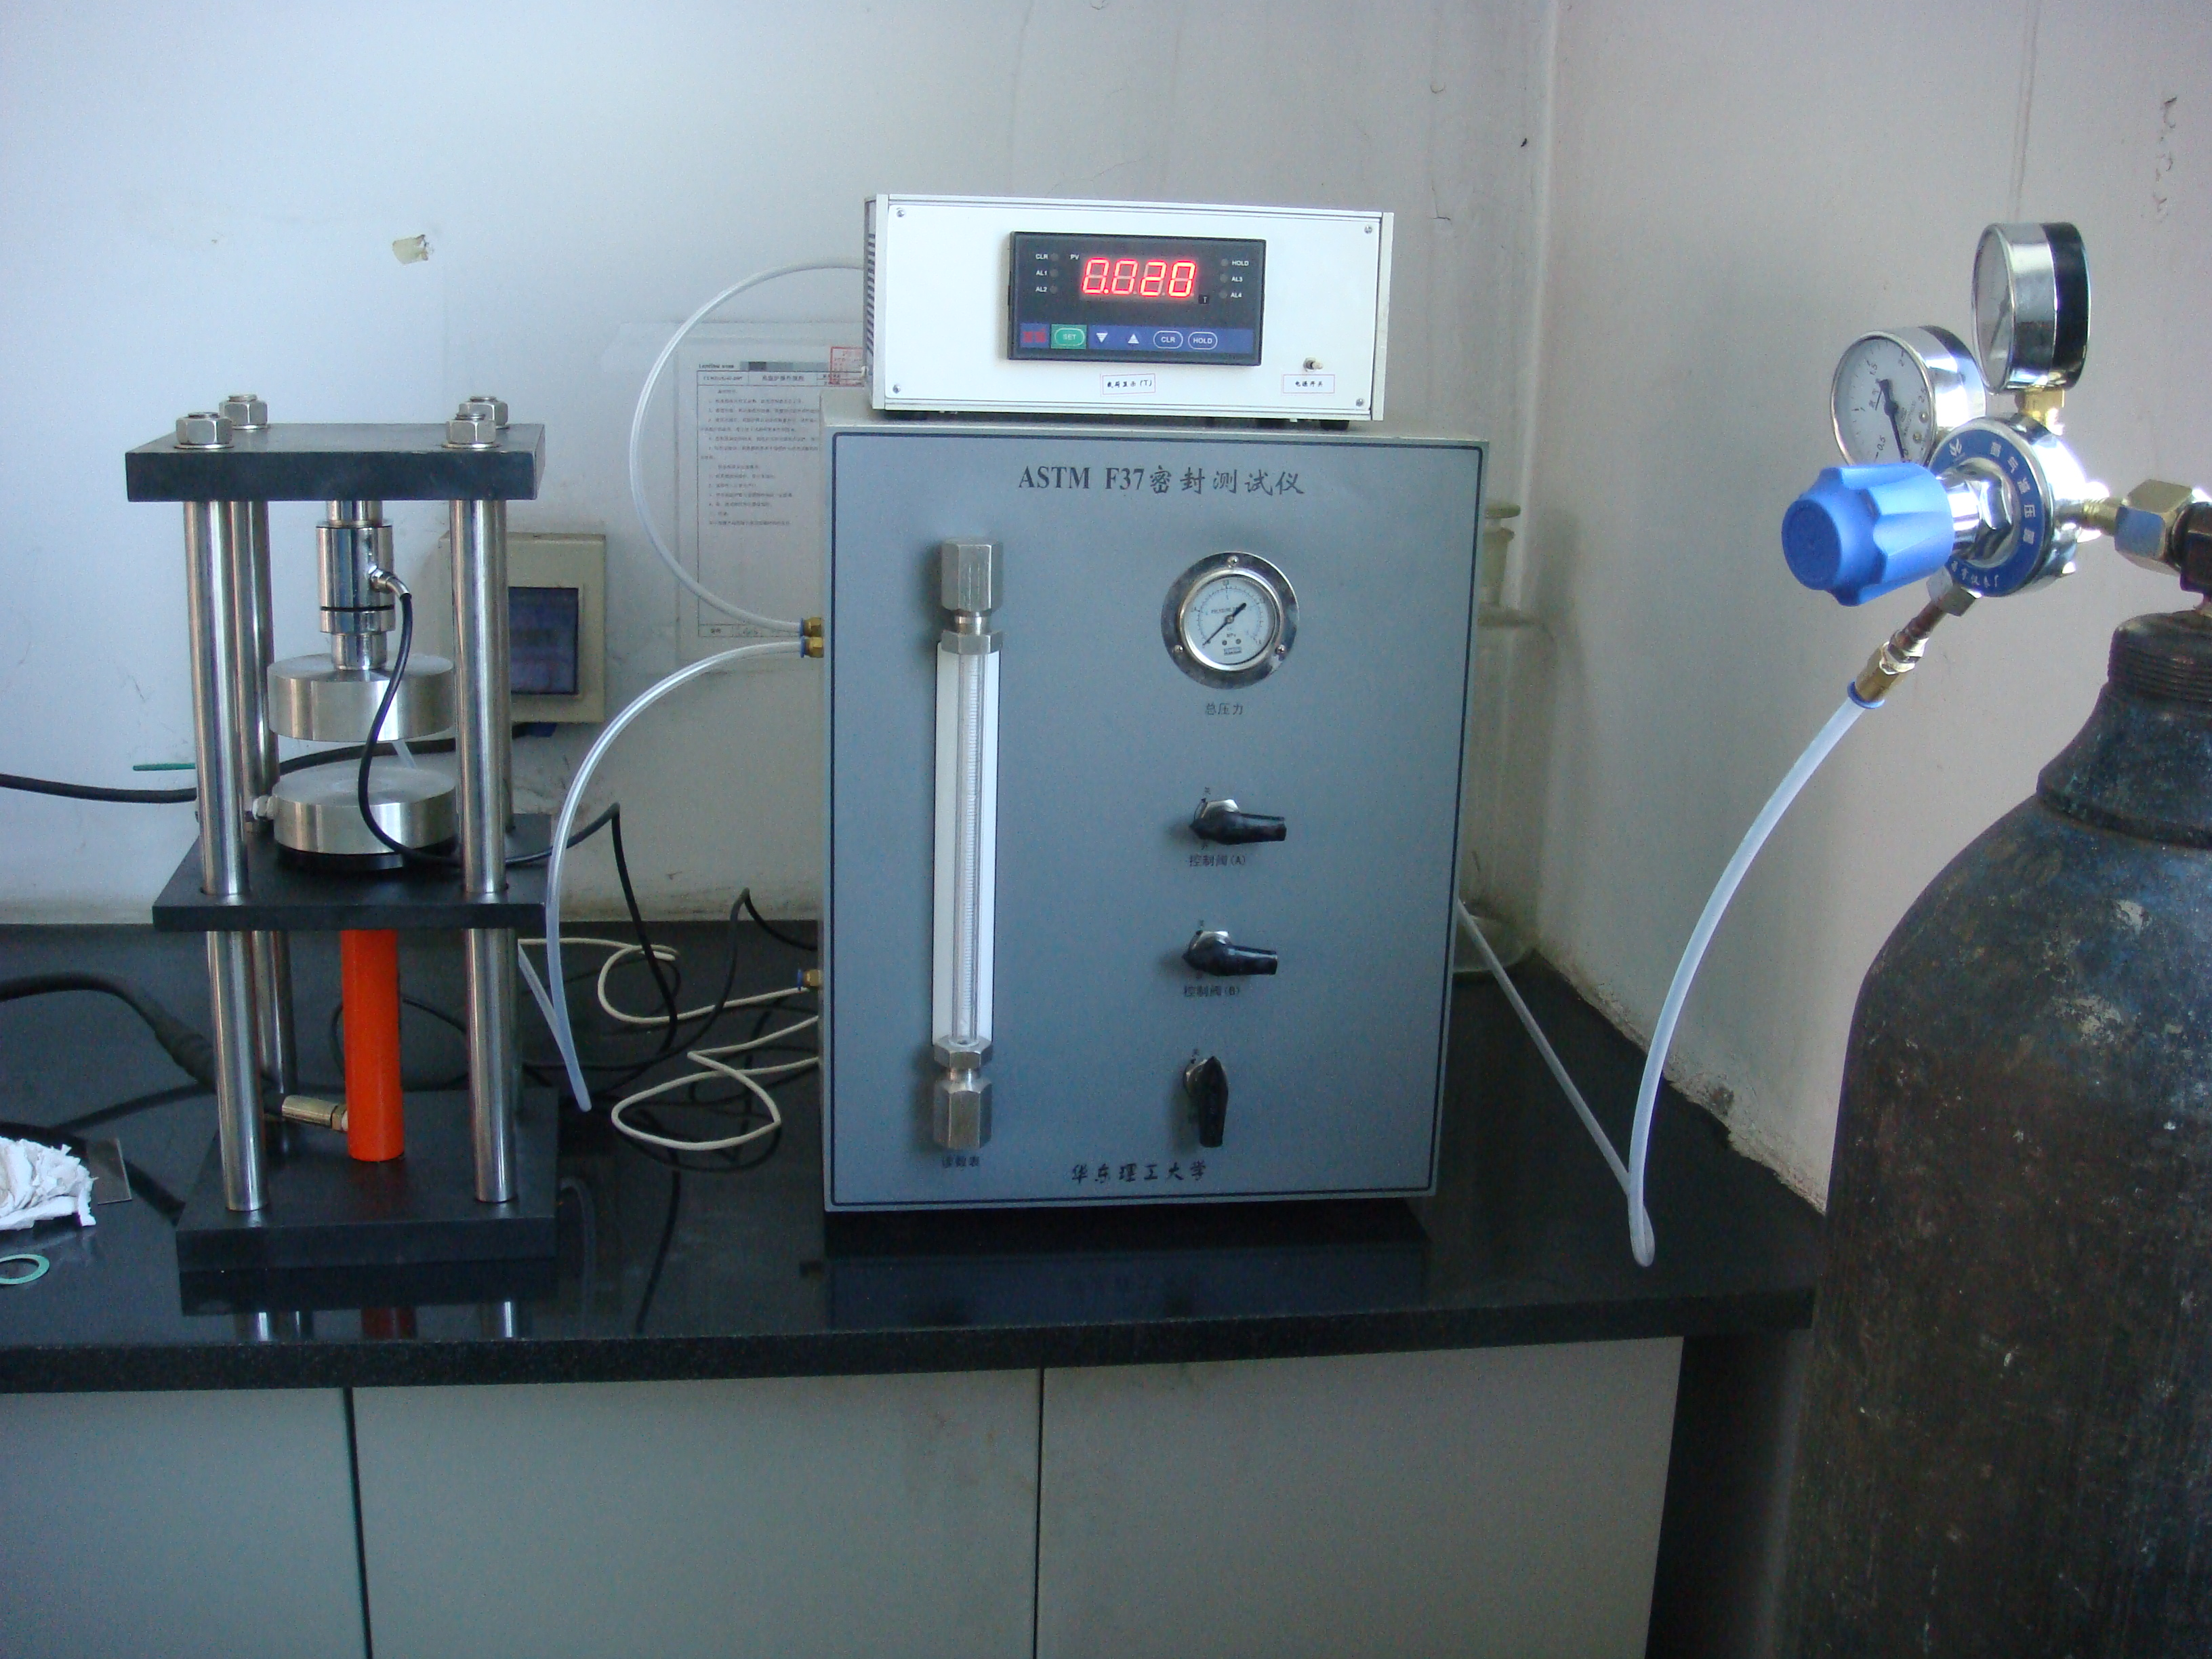 Air tightness testing machine (ASTM F37B)